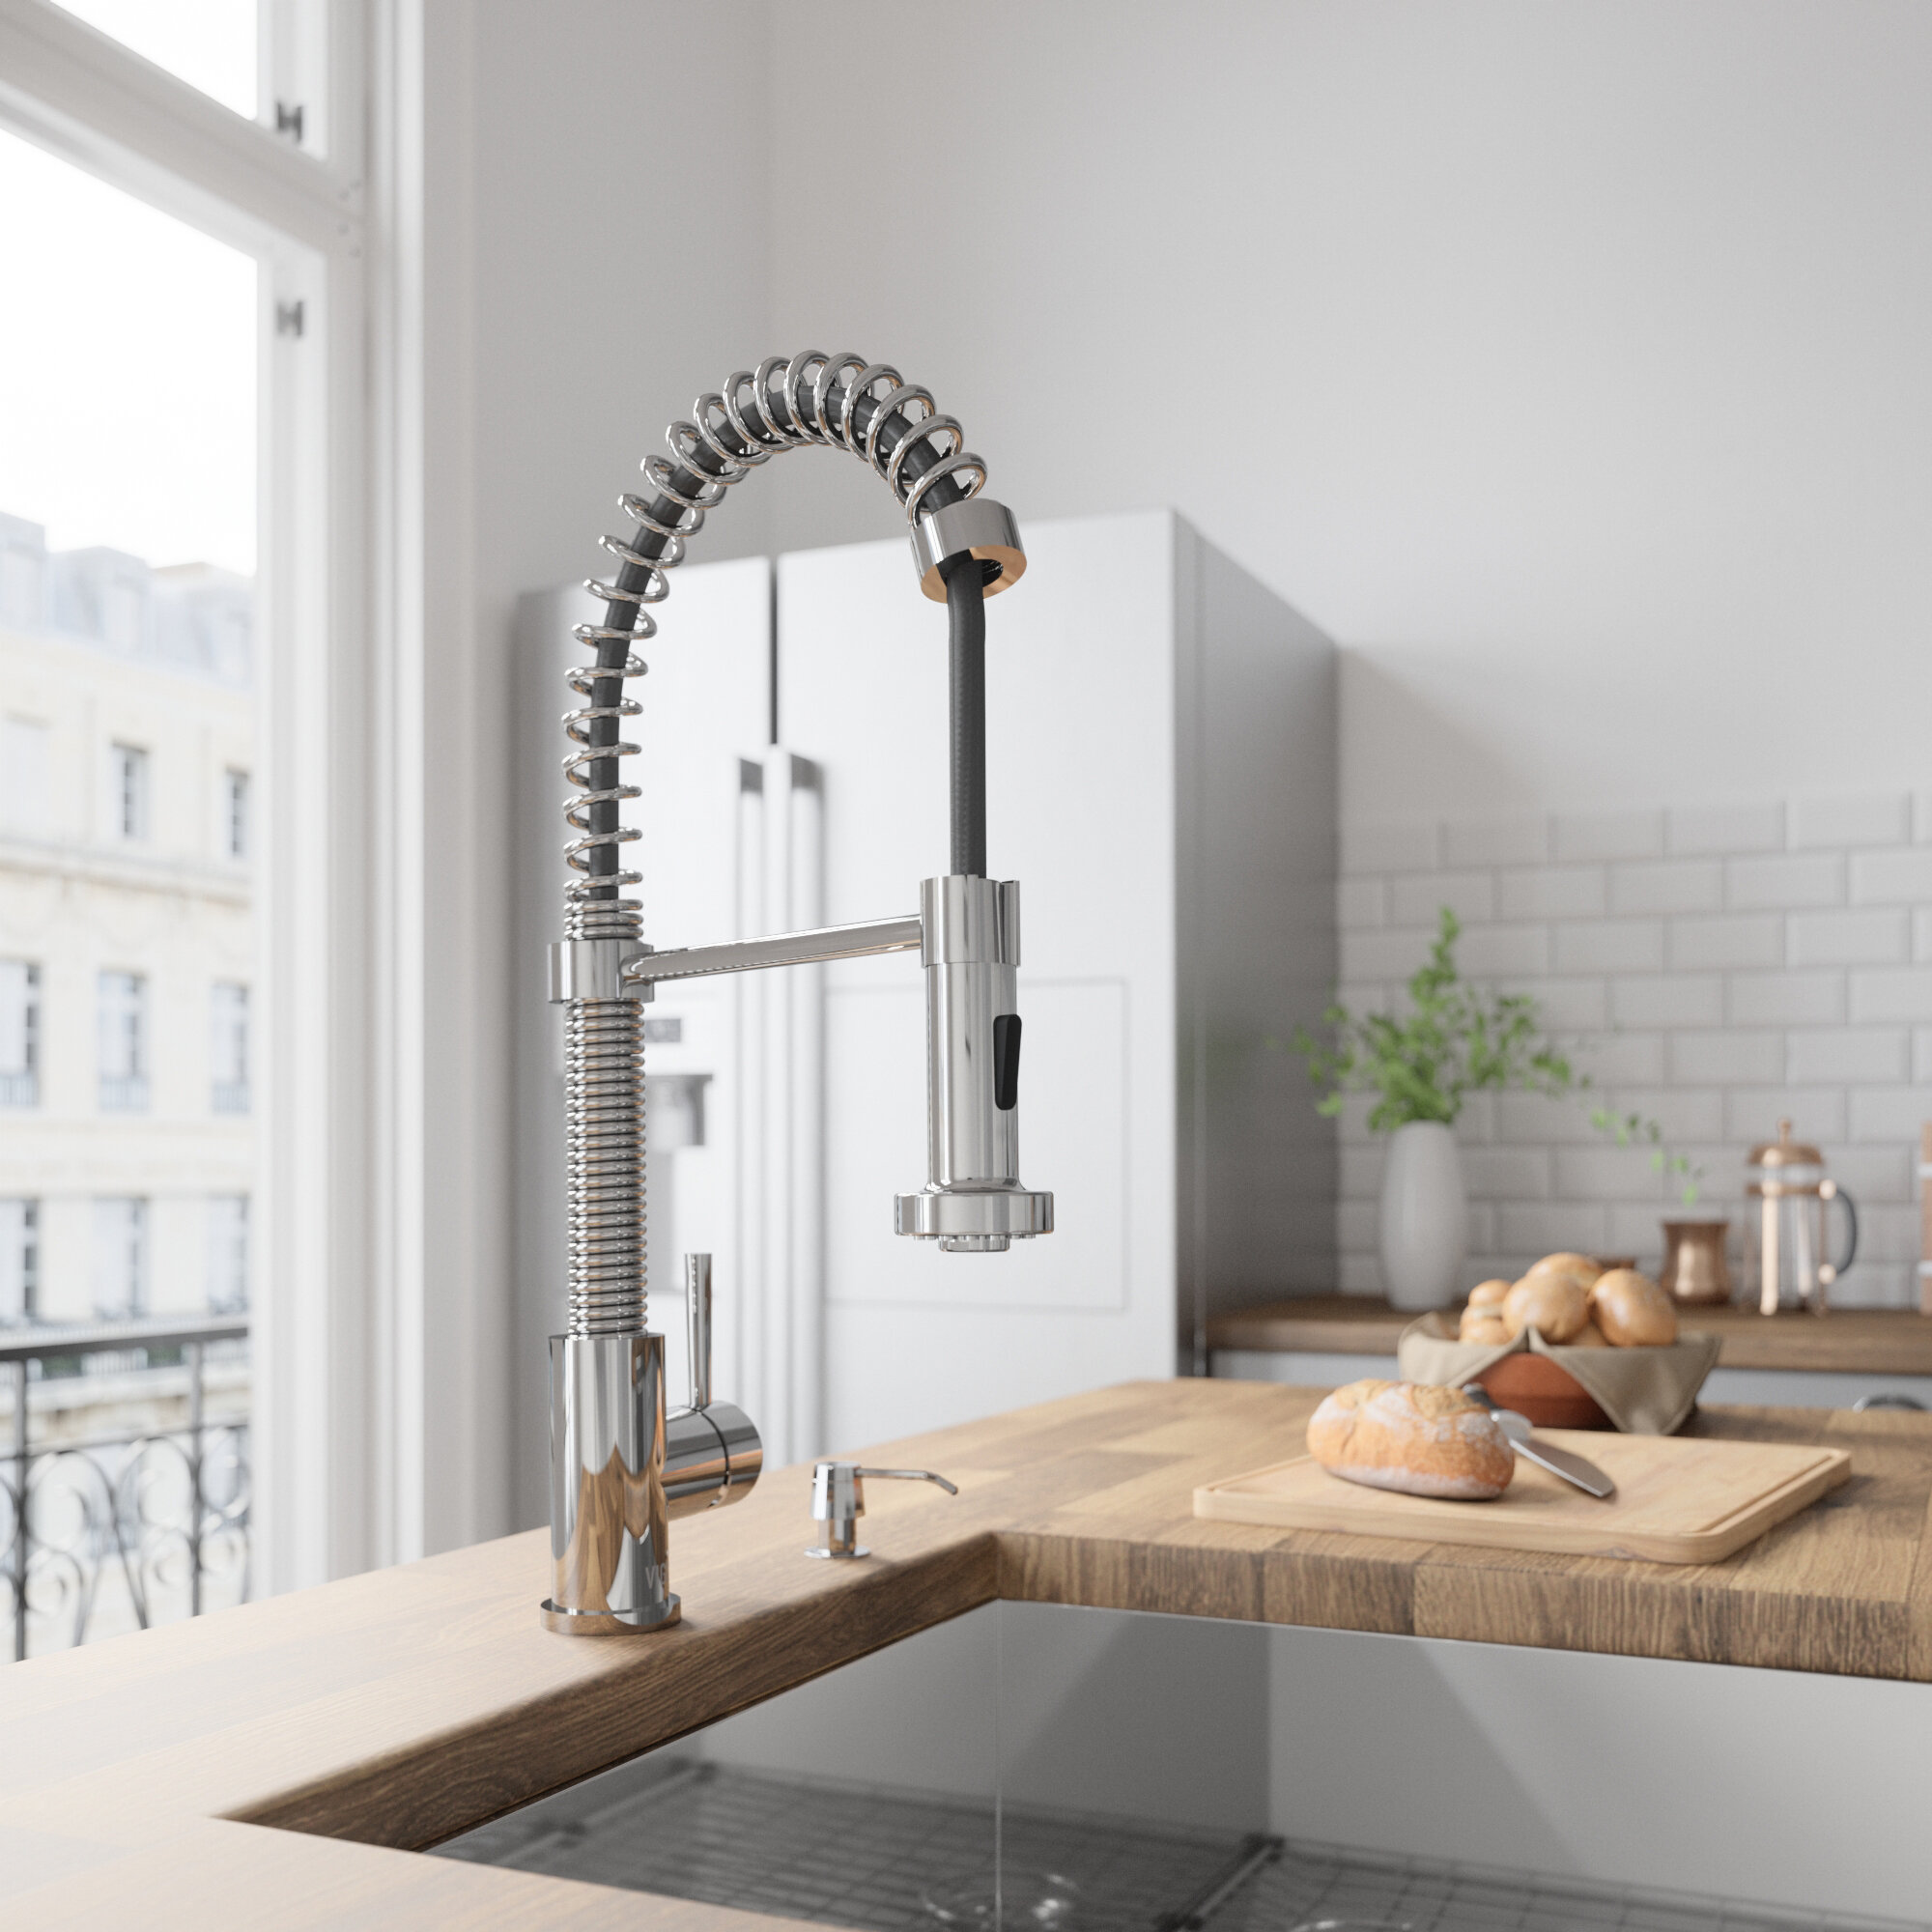 of faucet faucets canisters tags brands for kohler malleco pull country sink down kitchen inspirational best picture